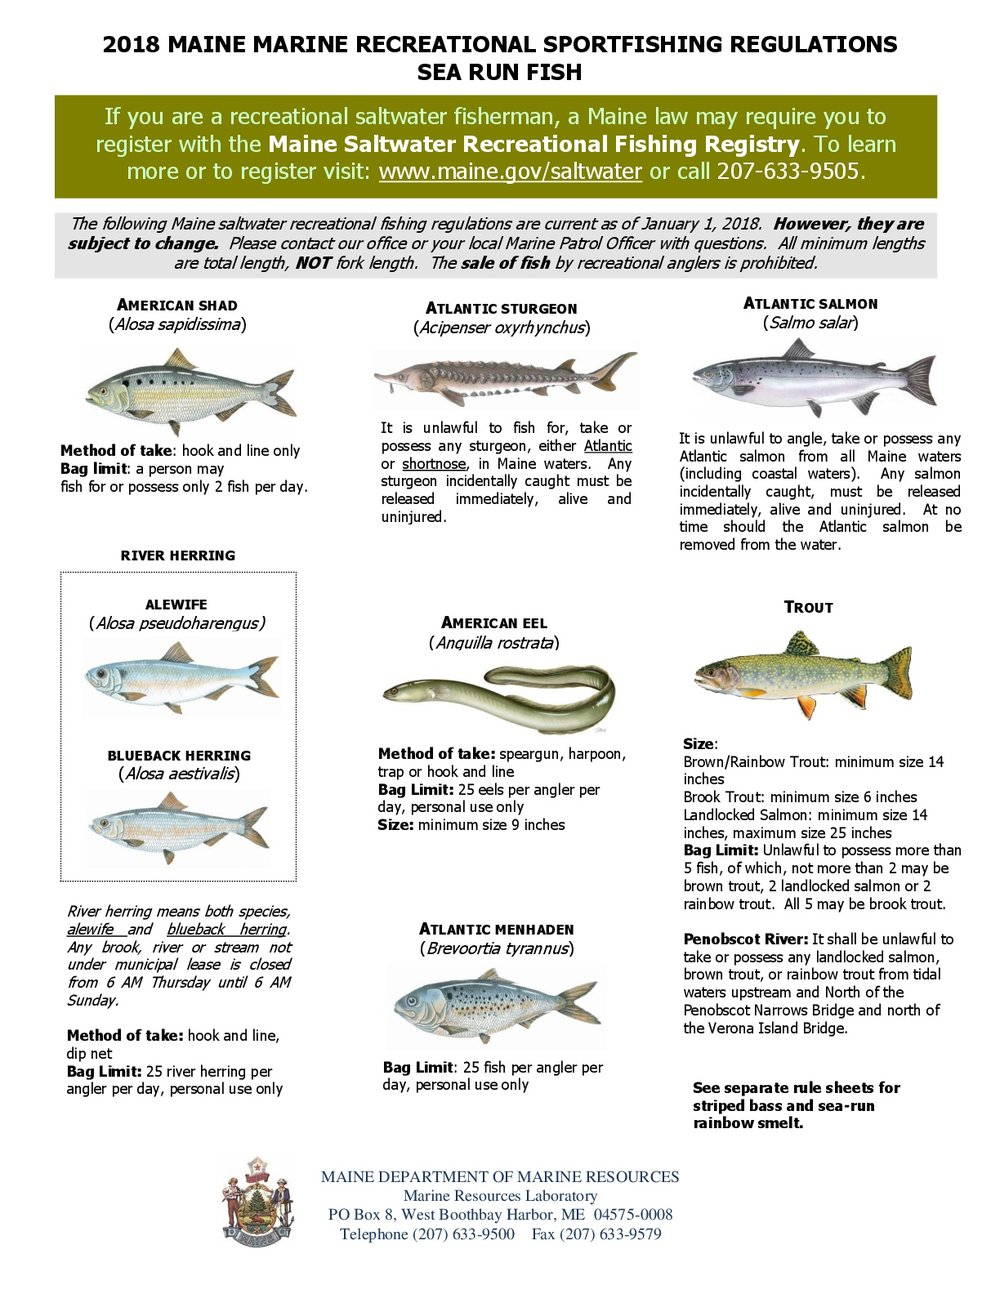 DMR Searun Sportfish Regulations 2018.jpg